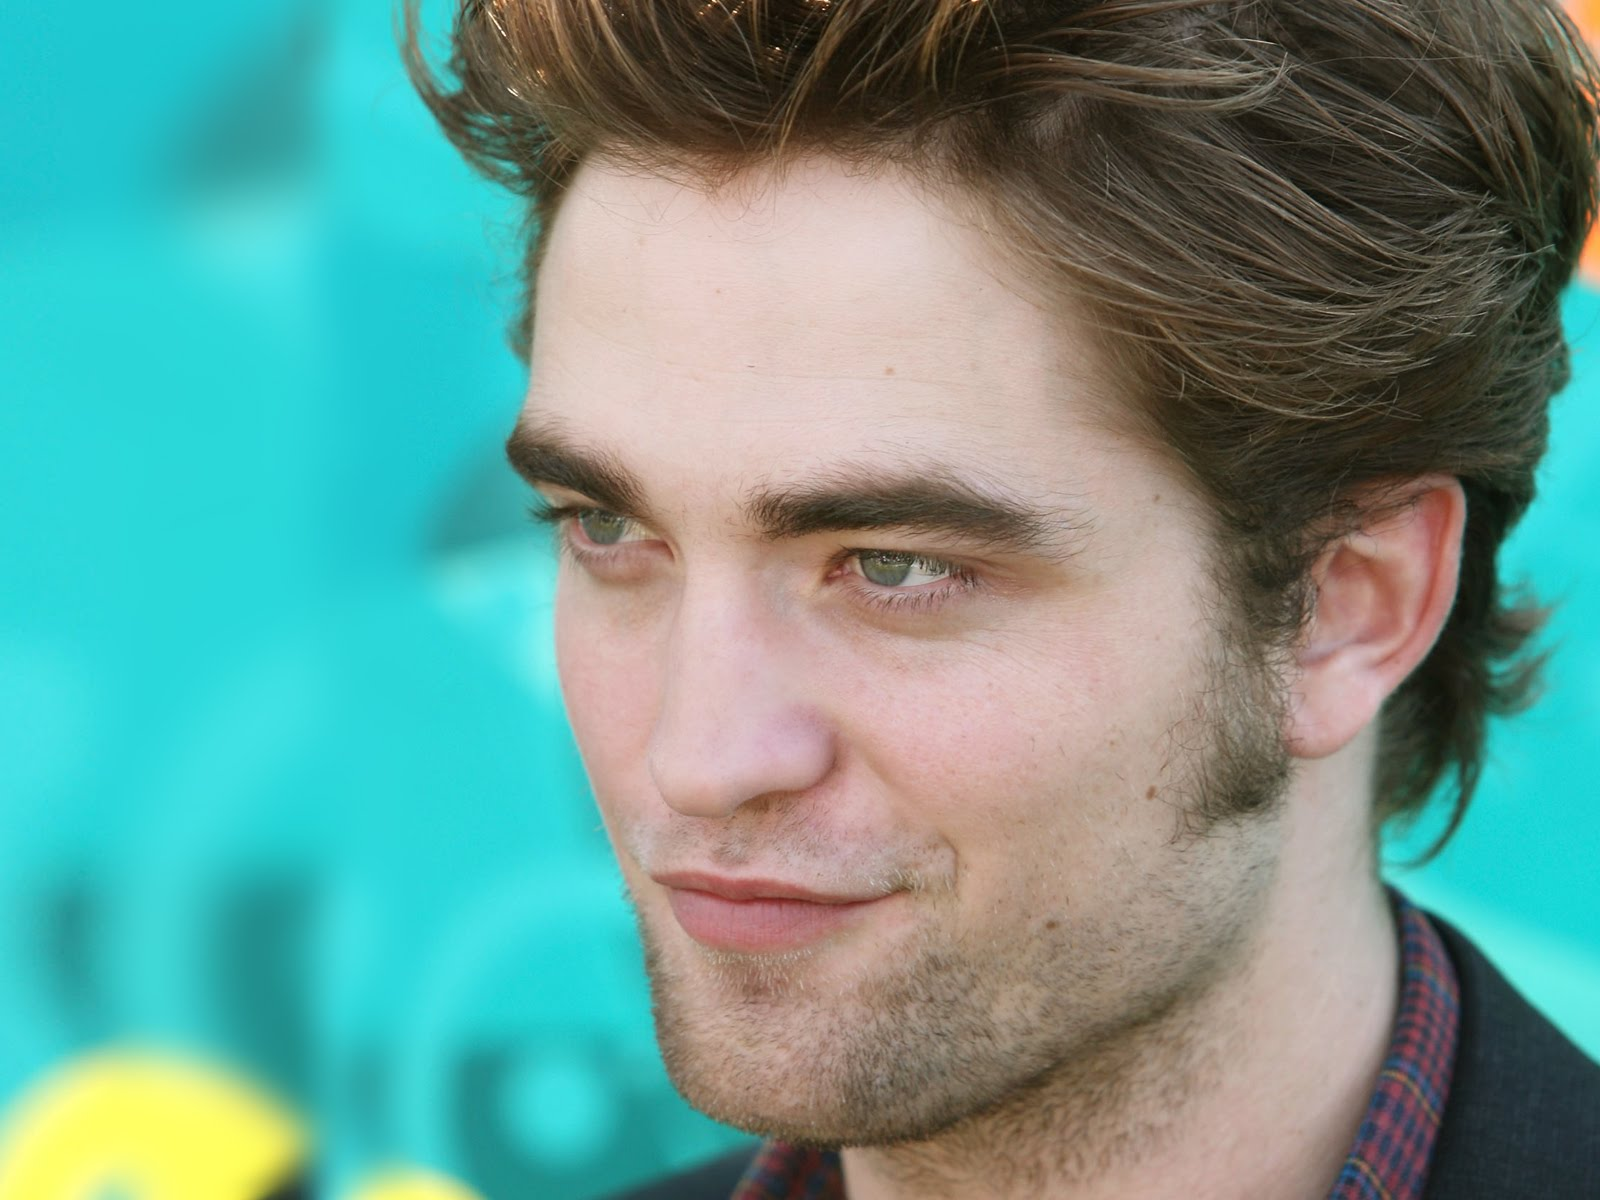 Robert Pattinson HD Images